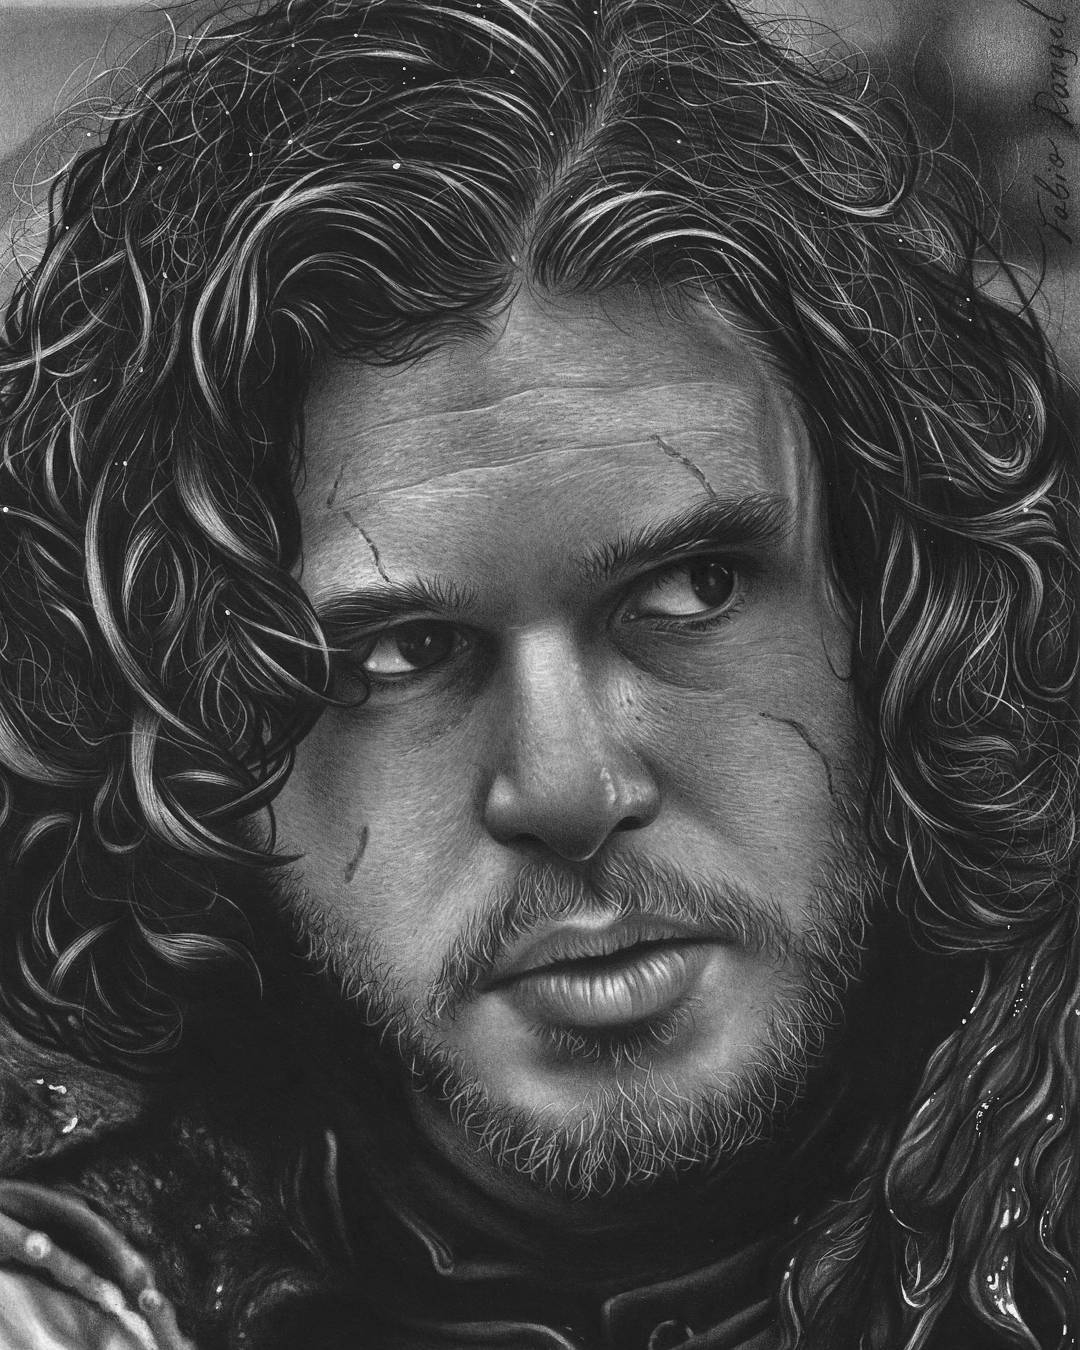 07-Jon-Snow-Kit-Harington-Game-of-Thrones-Fabio-Rangel-Drawings-of-Protagonists-from-TV-and-Movies-www-designstack-co